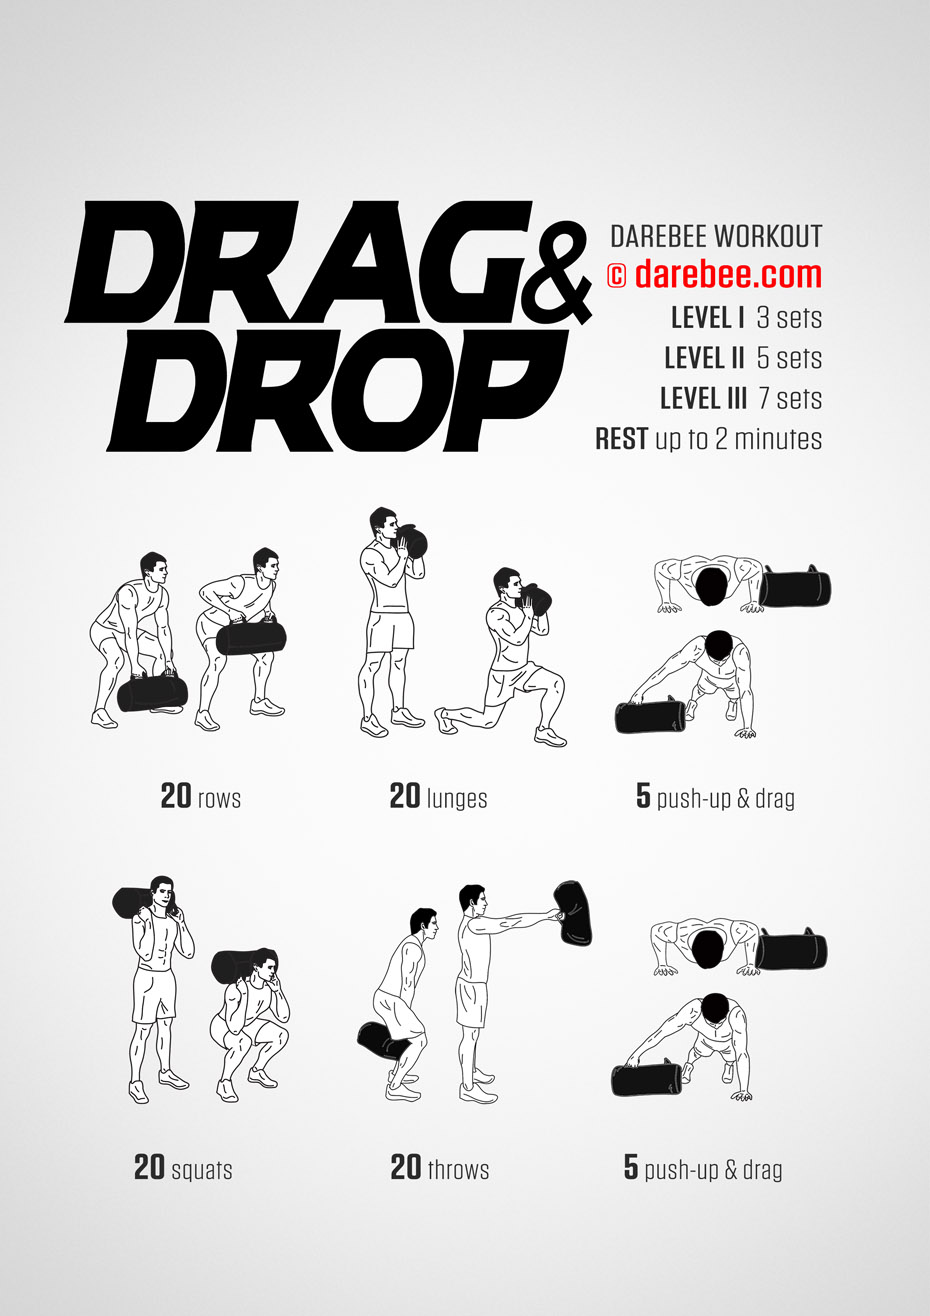 drag and drop workout